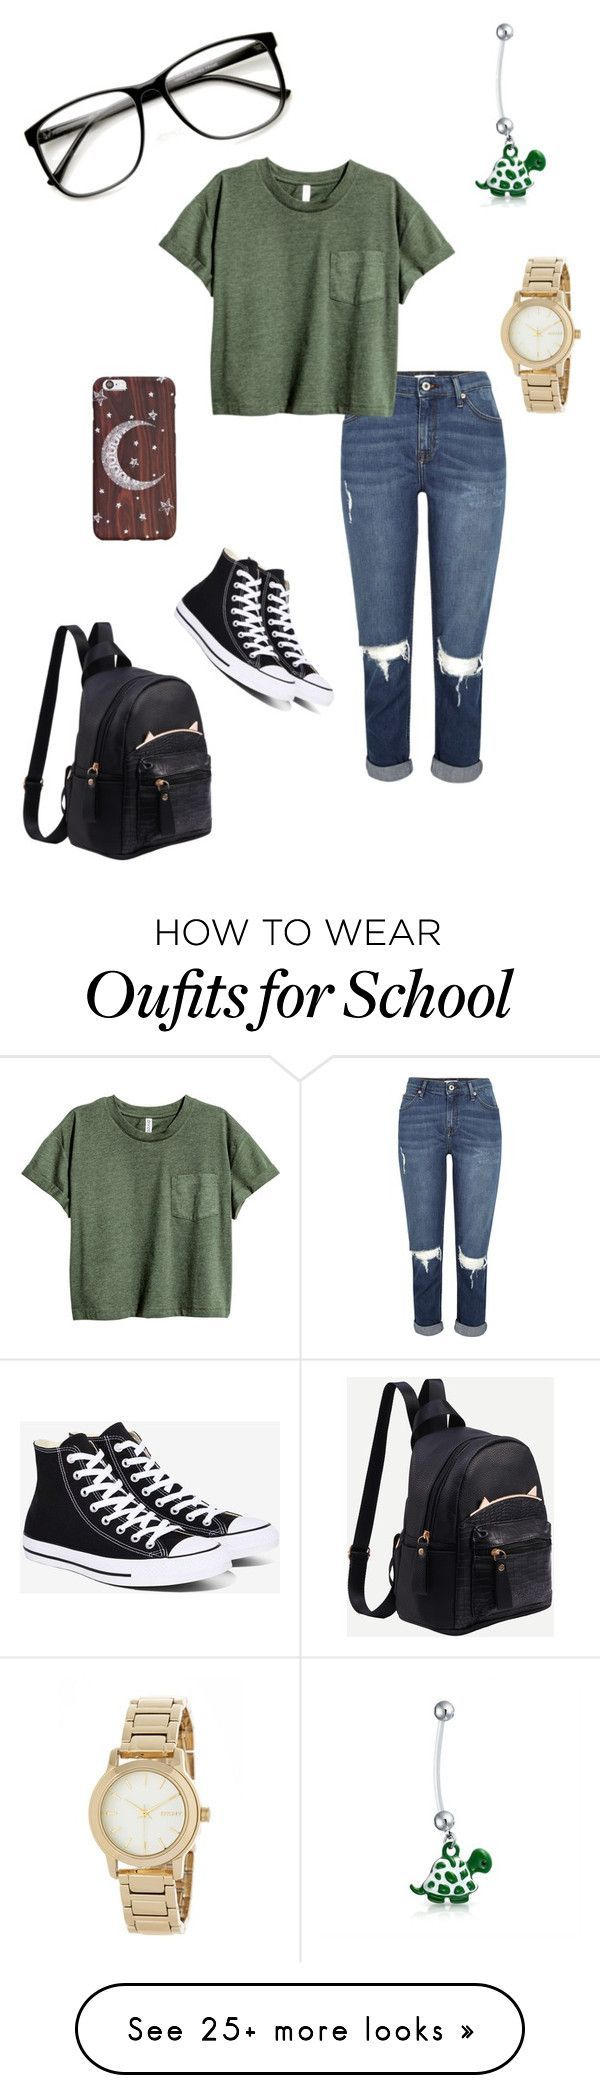 Back to school by jazlynvanessa on polyvore featuring converse